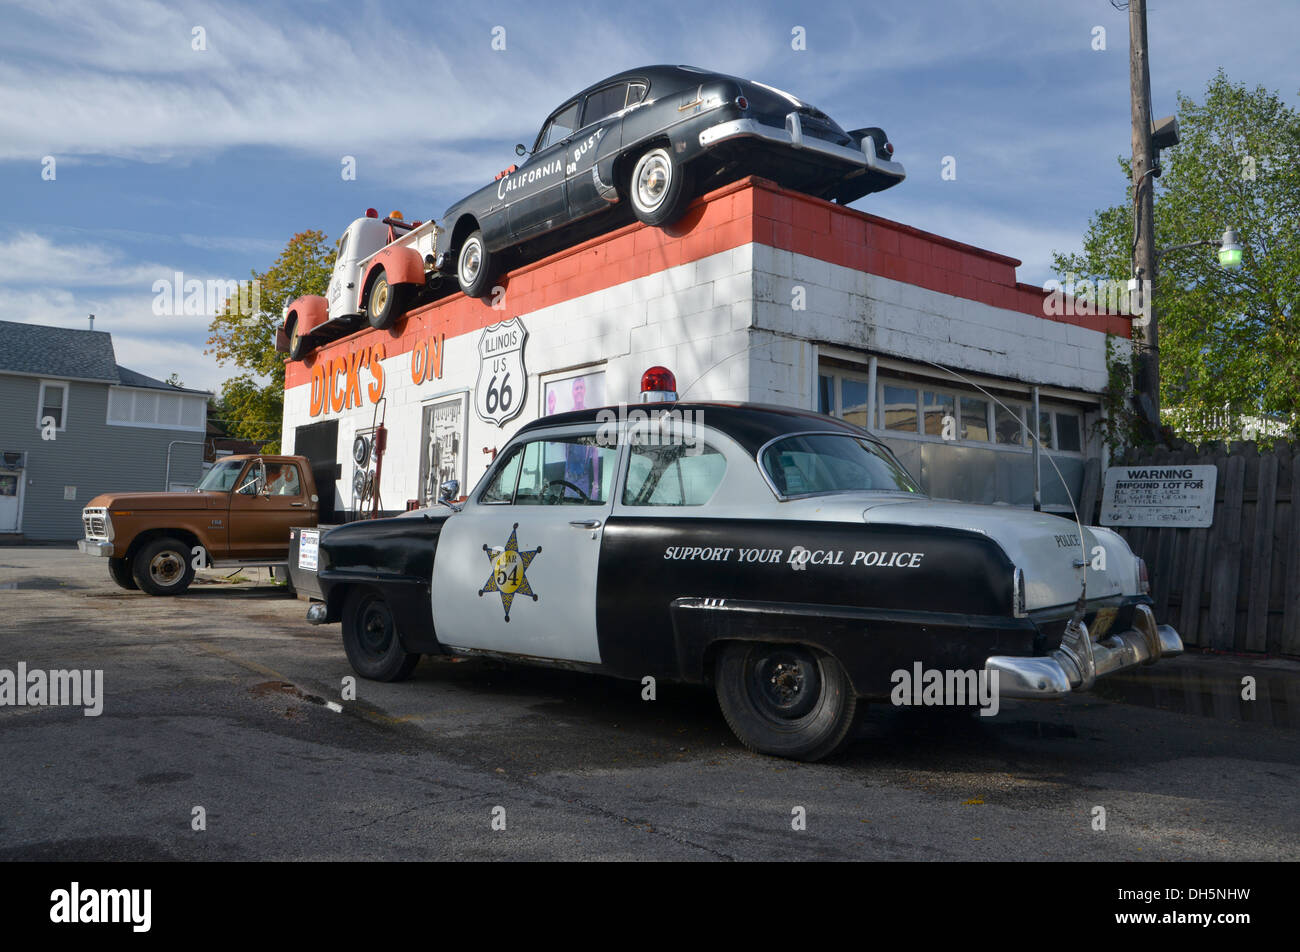 route 66 car stock photos & route 66 car stock images - alamy